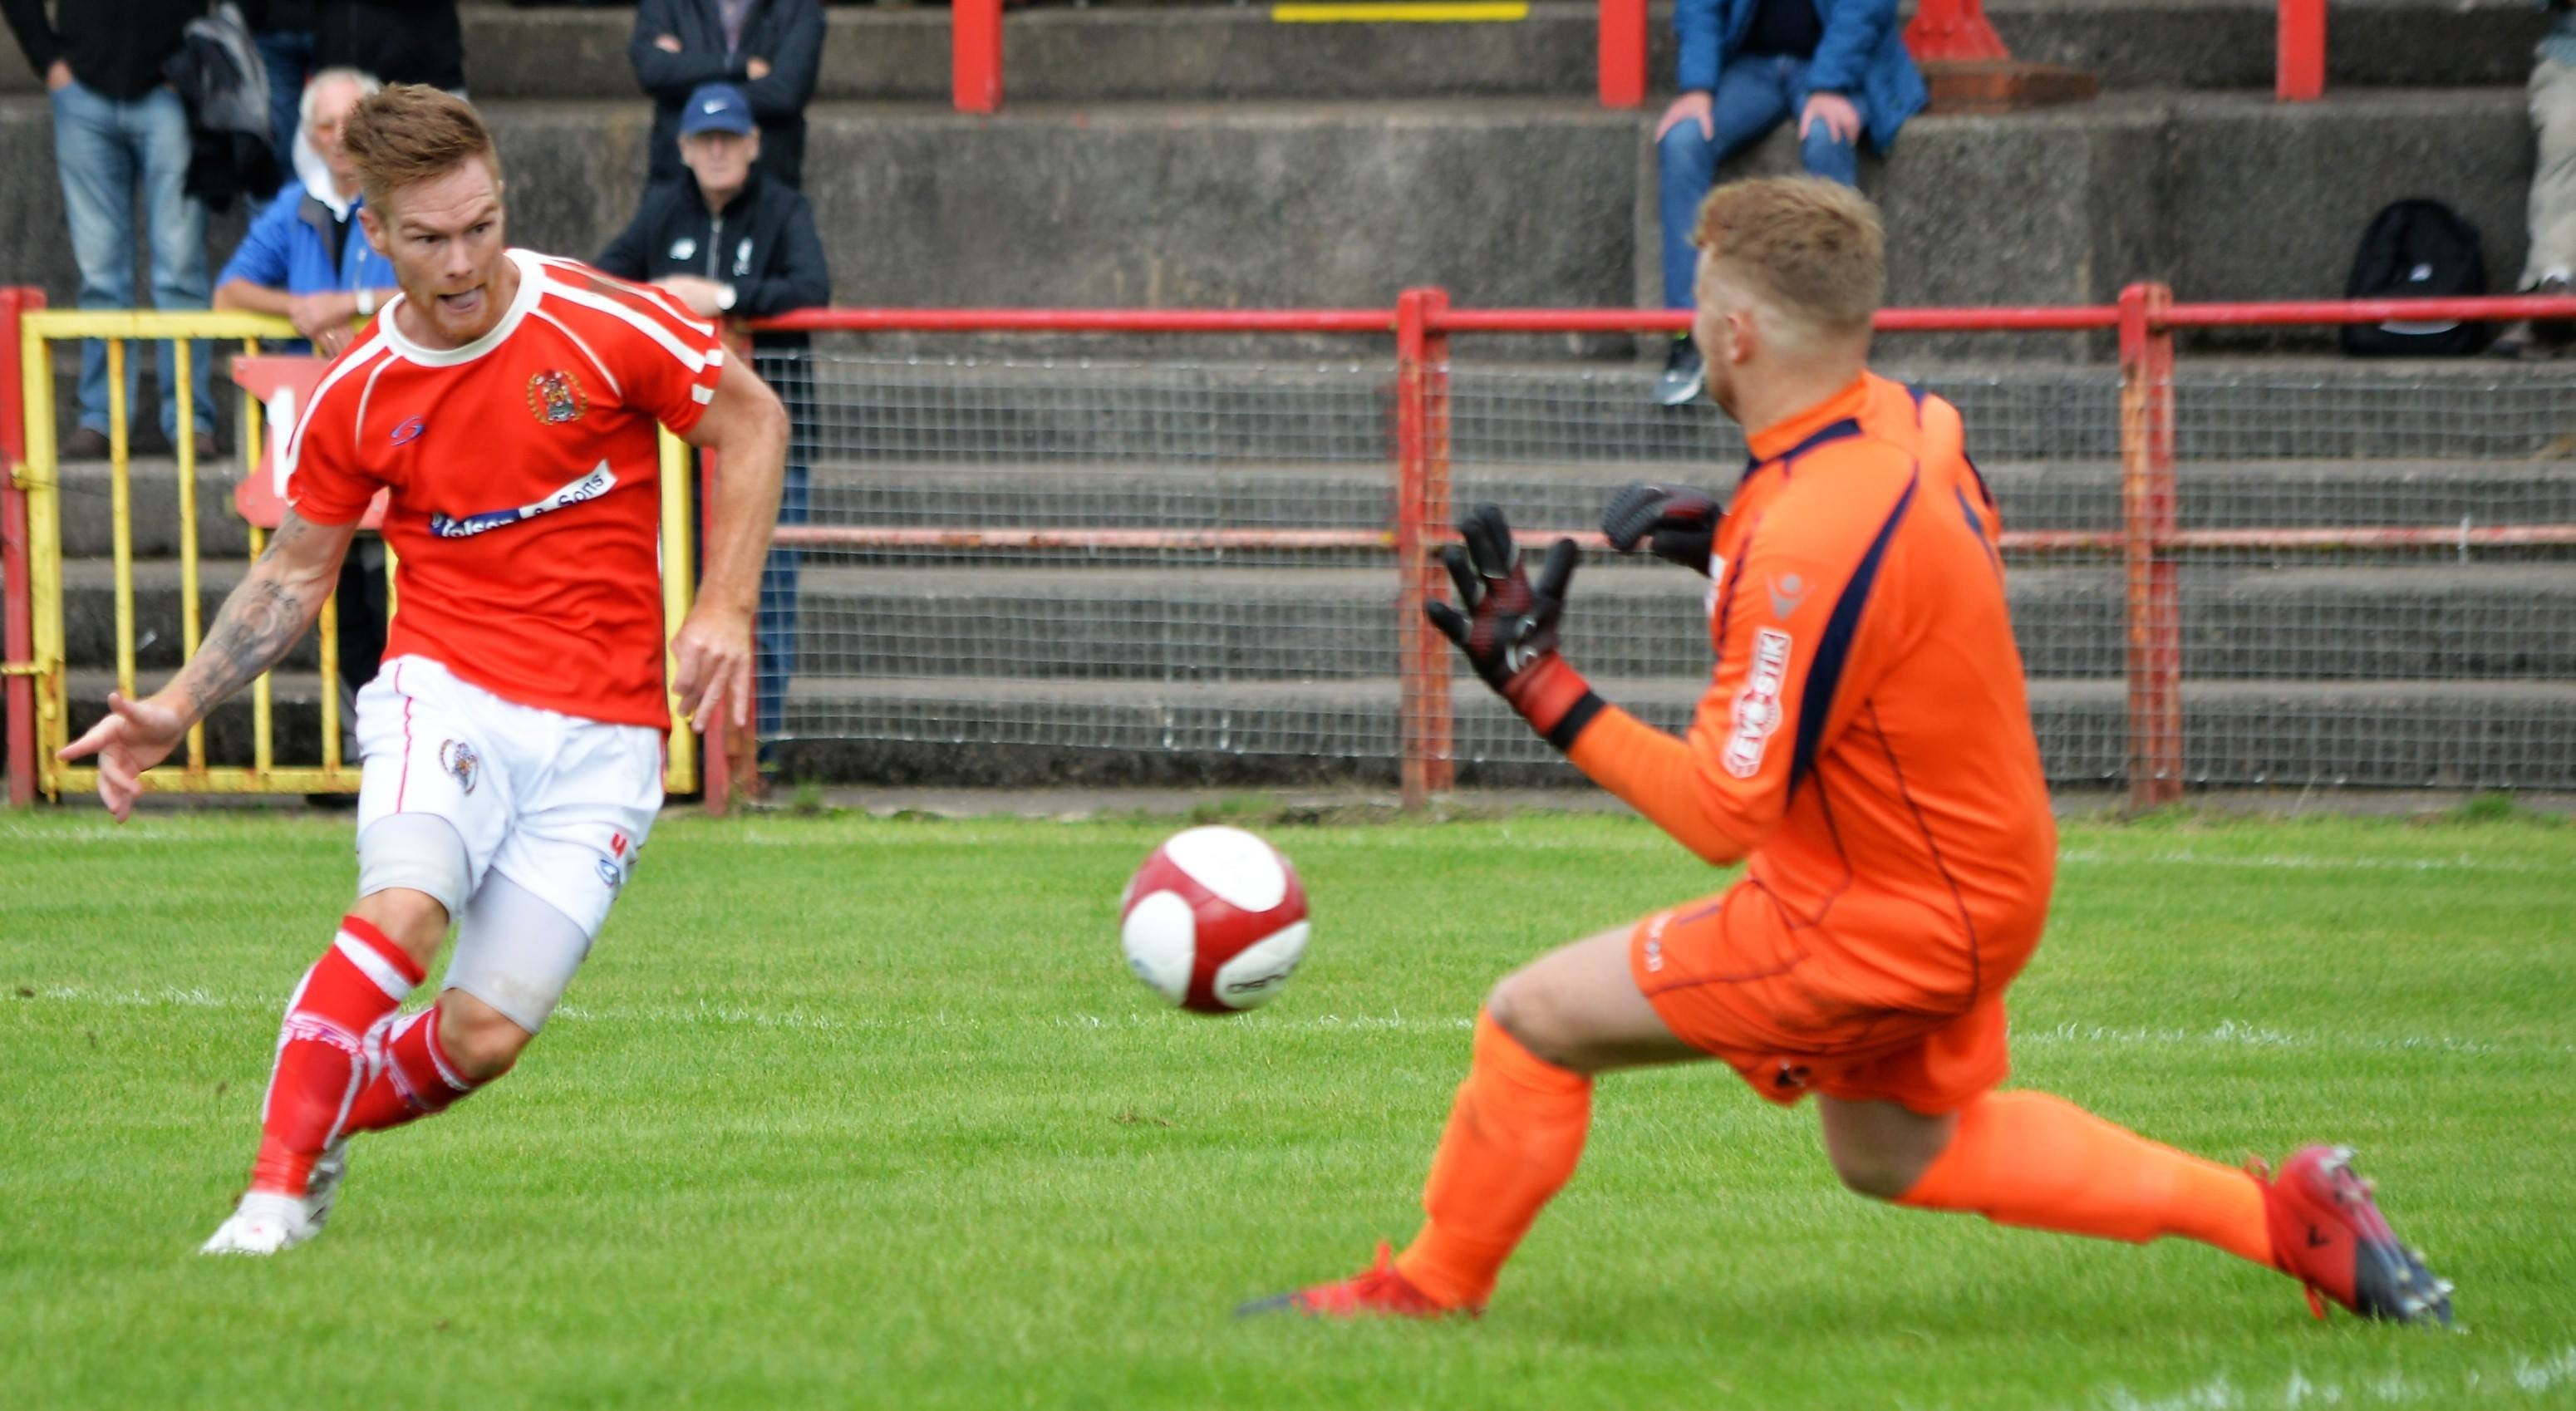 Jason Walker scores against Stafford Rangers